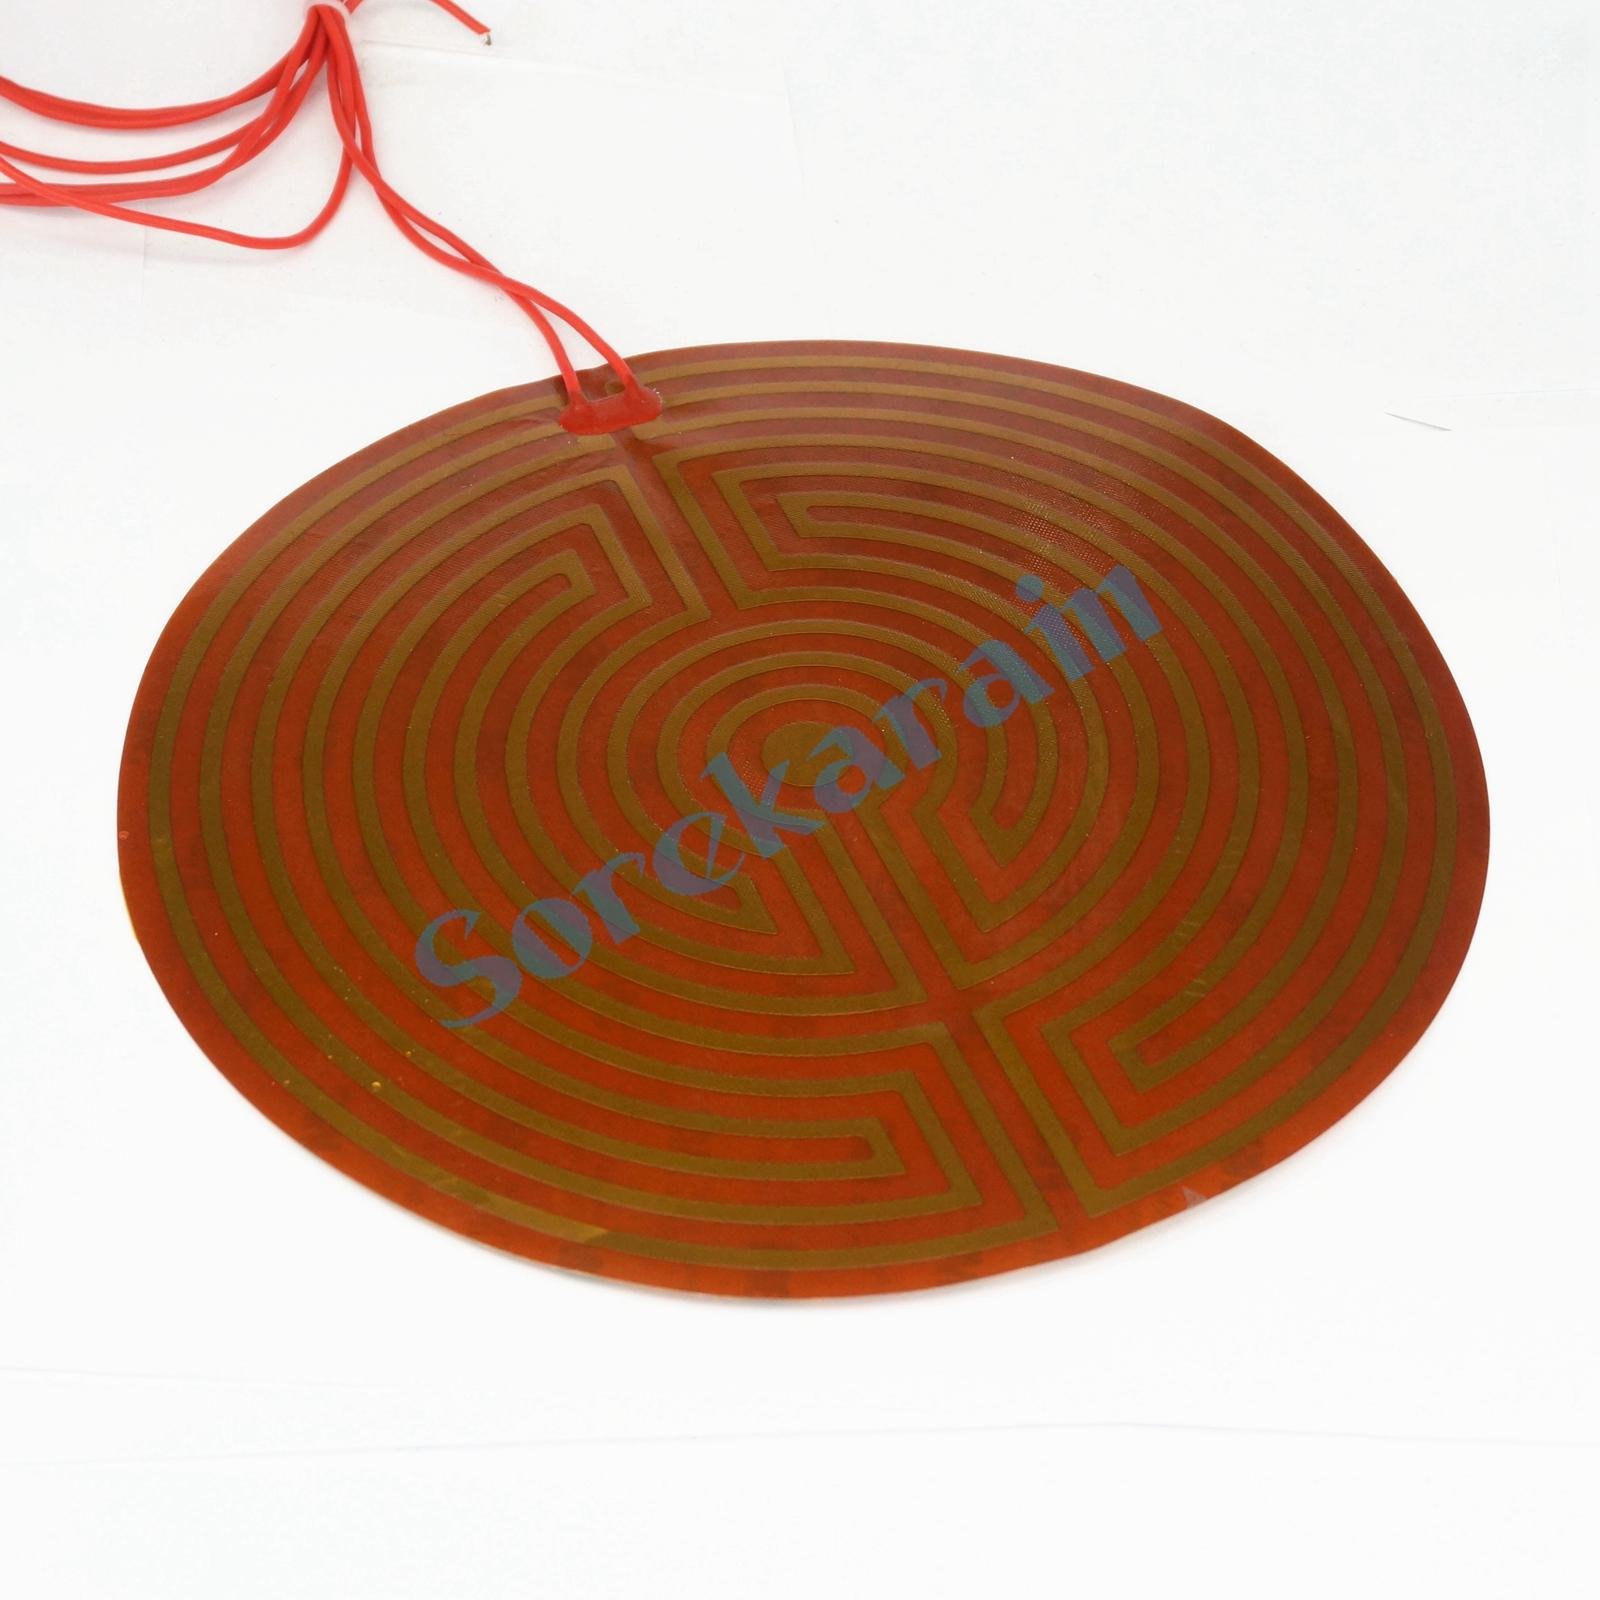 220mm 240W 24V DC Flexiable Round Eeletric Polyimide Film Heater Heating element for Electrical Wires 100x100mm 12v 90w element heating pan pi film heating film polyimide heater heat rubber electric element for 3d printer plate